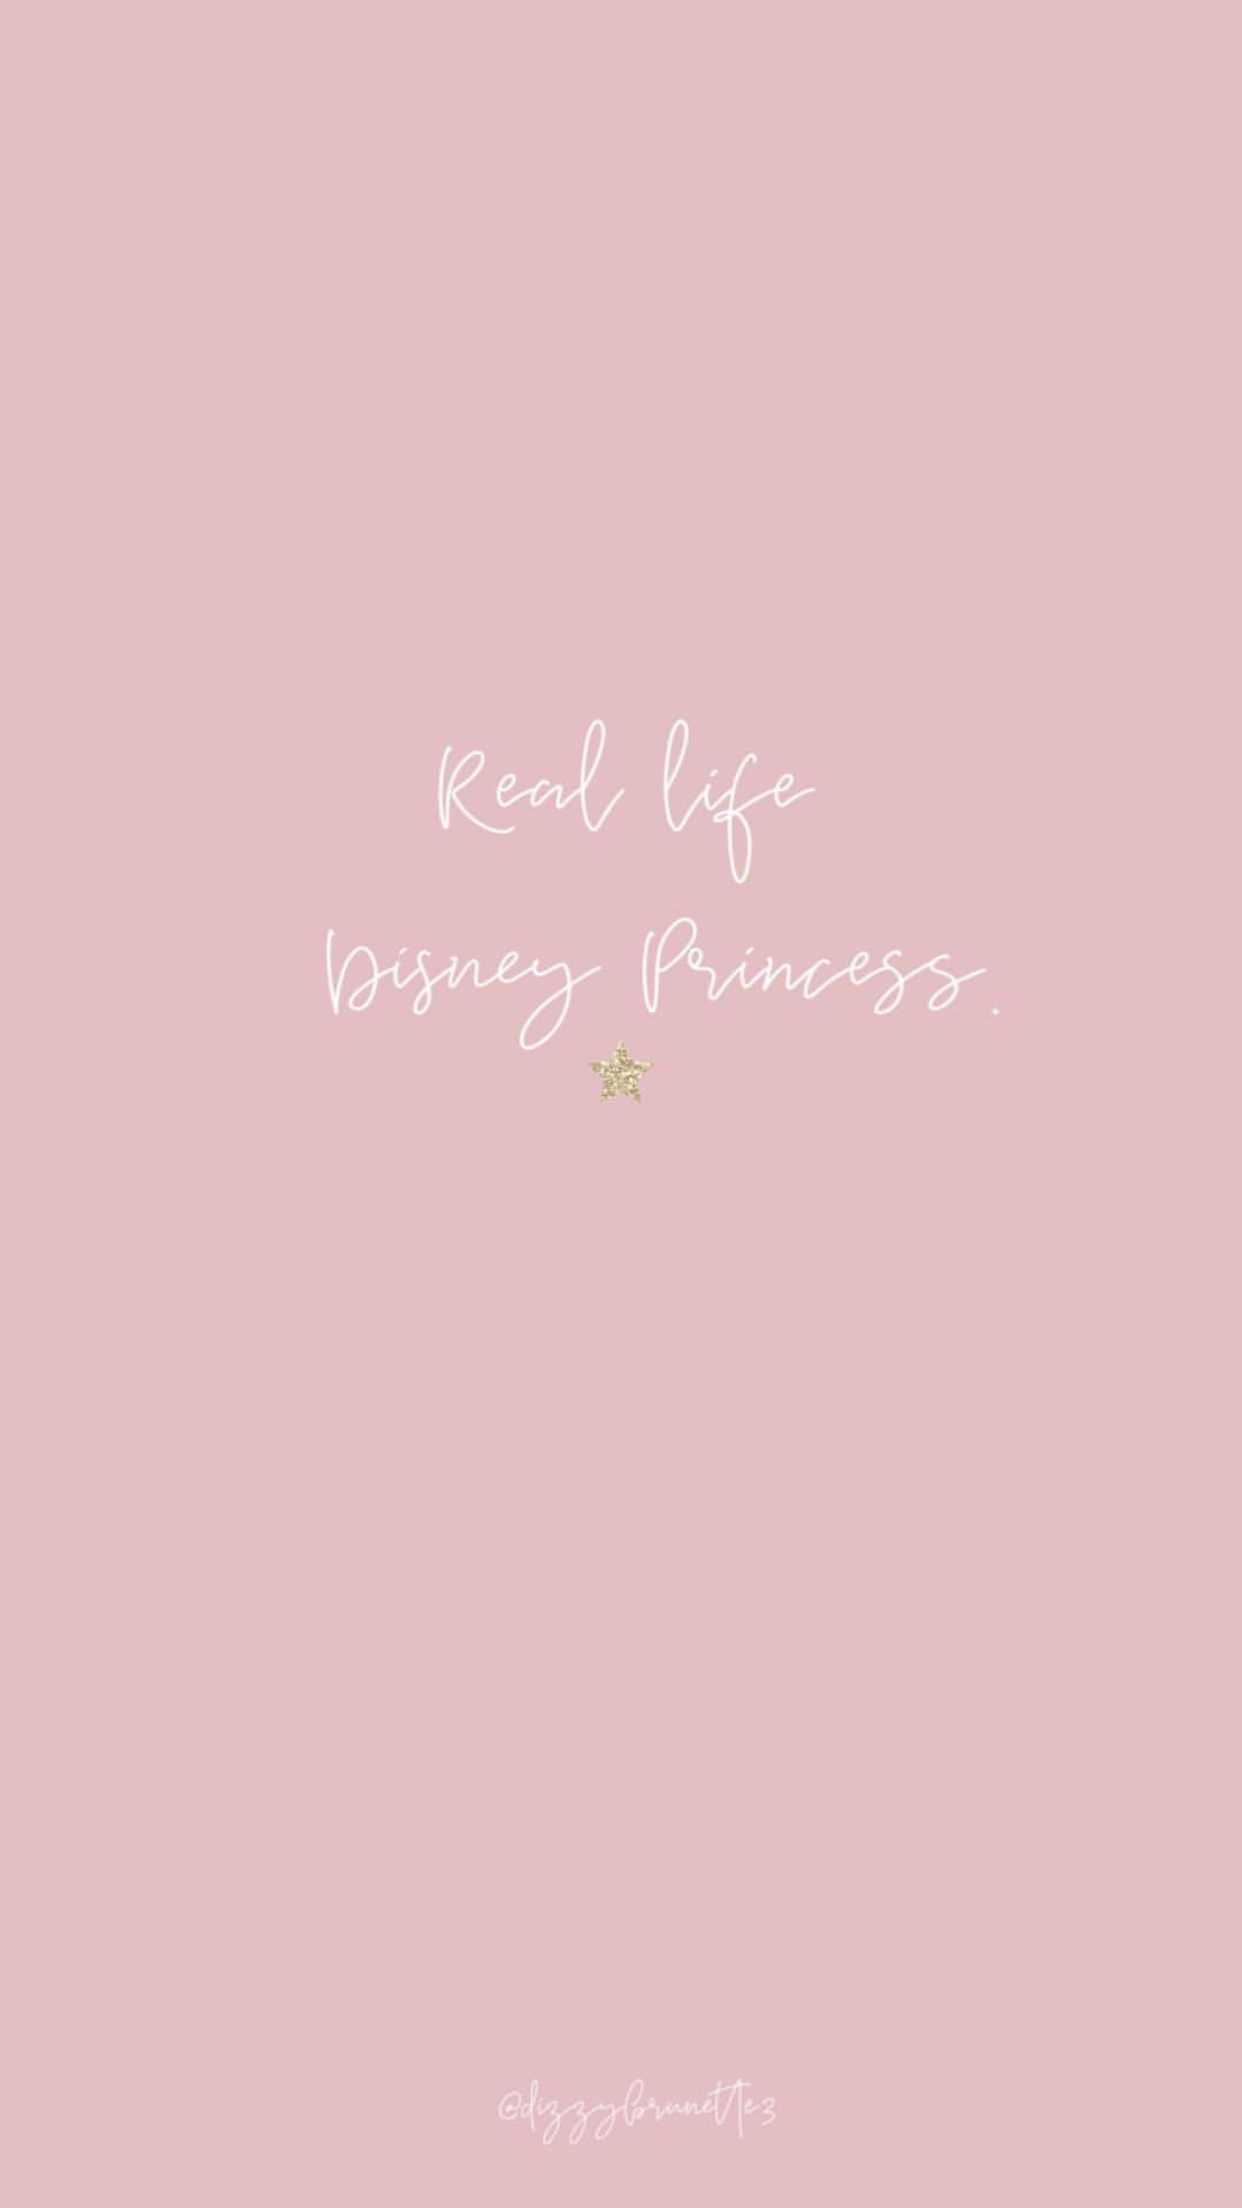 Pin By Kayla Sych On Backgrounds Wallpaper Iphone Disney Princess Disney Phone Wallpaper Baby Pink Wallpaper Iphone